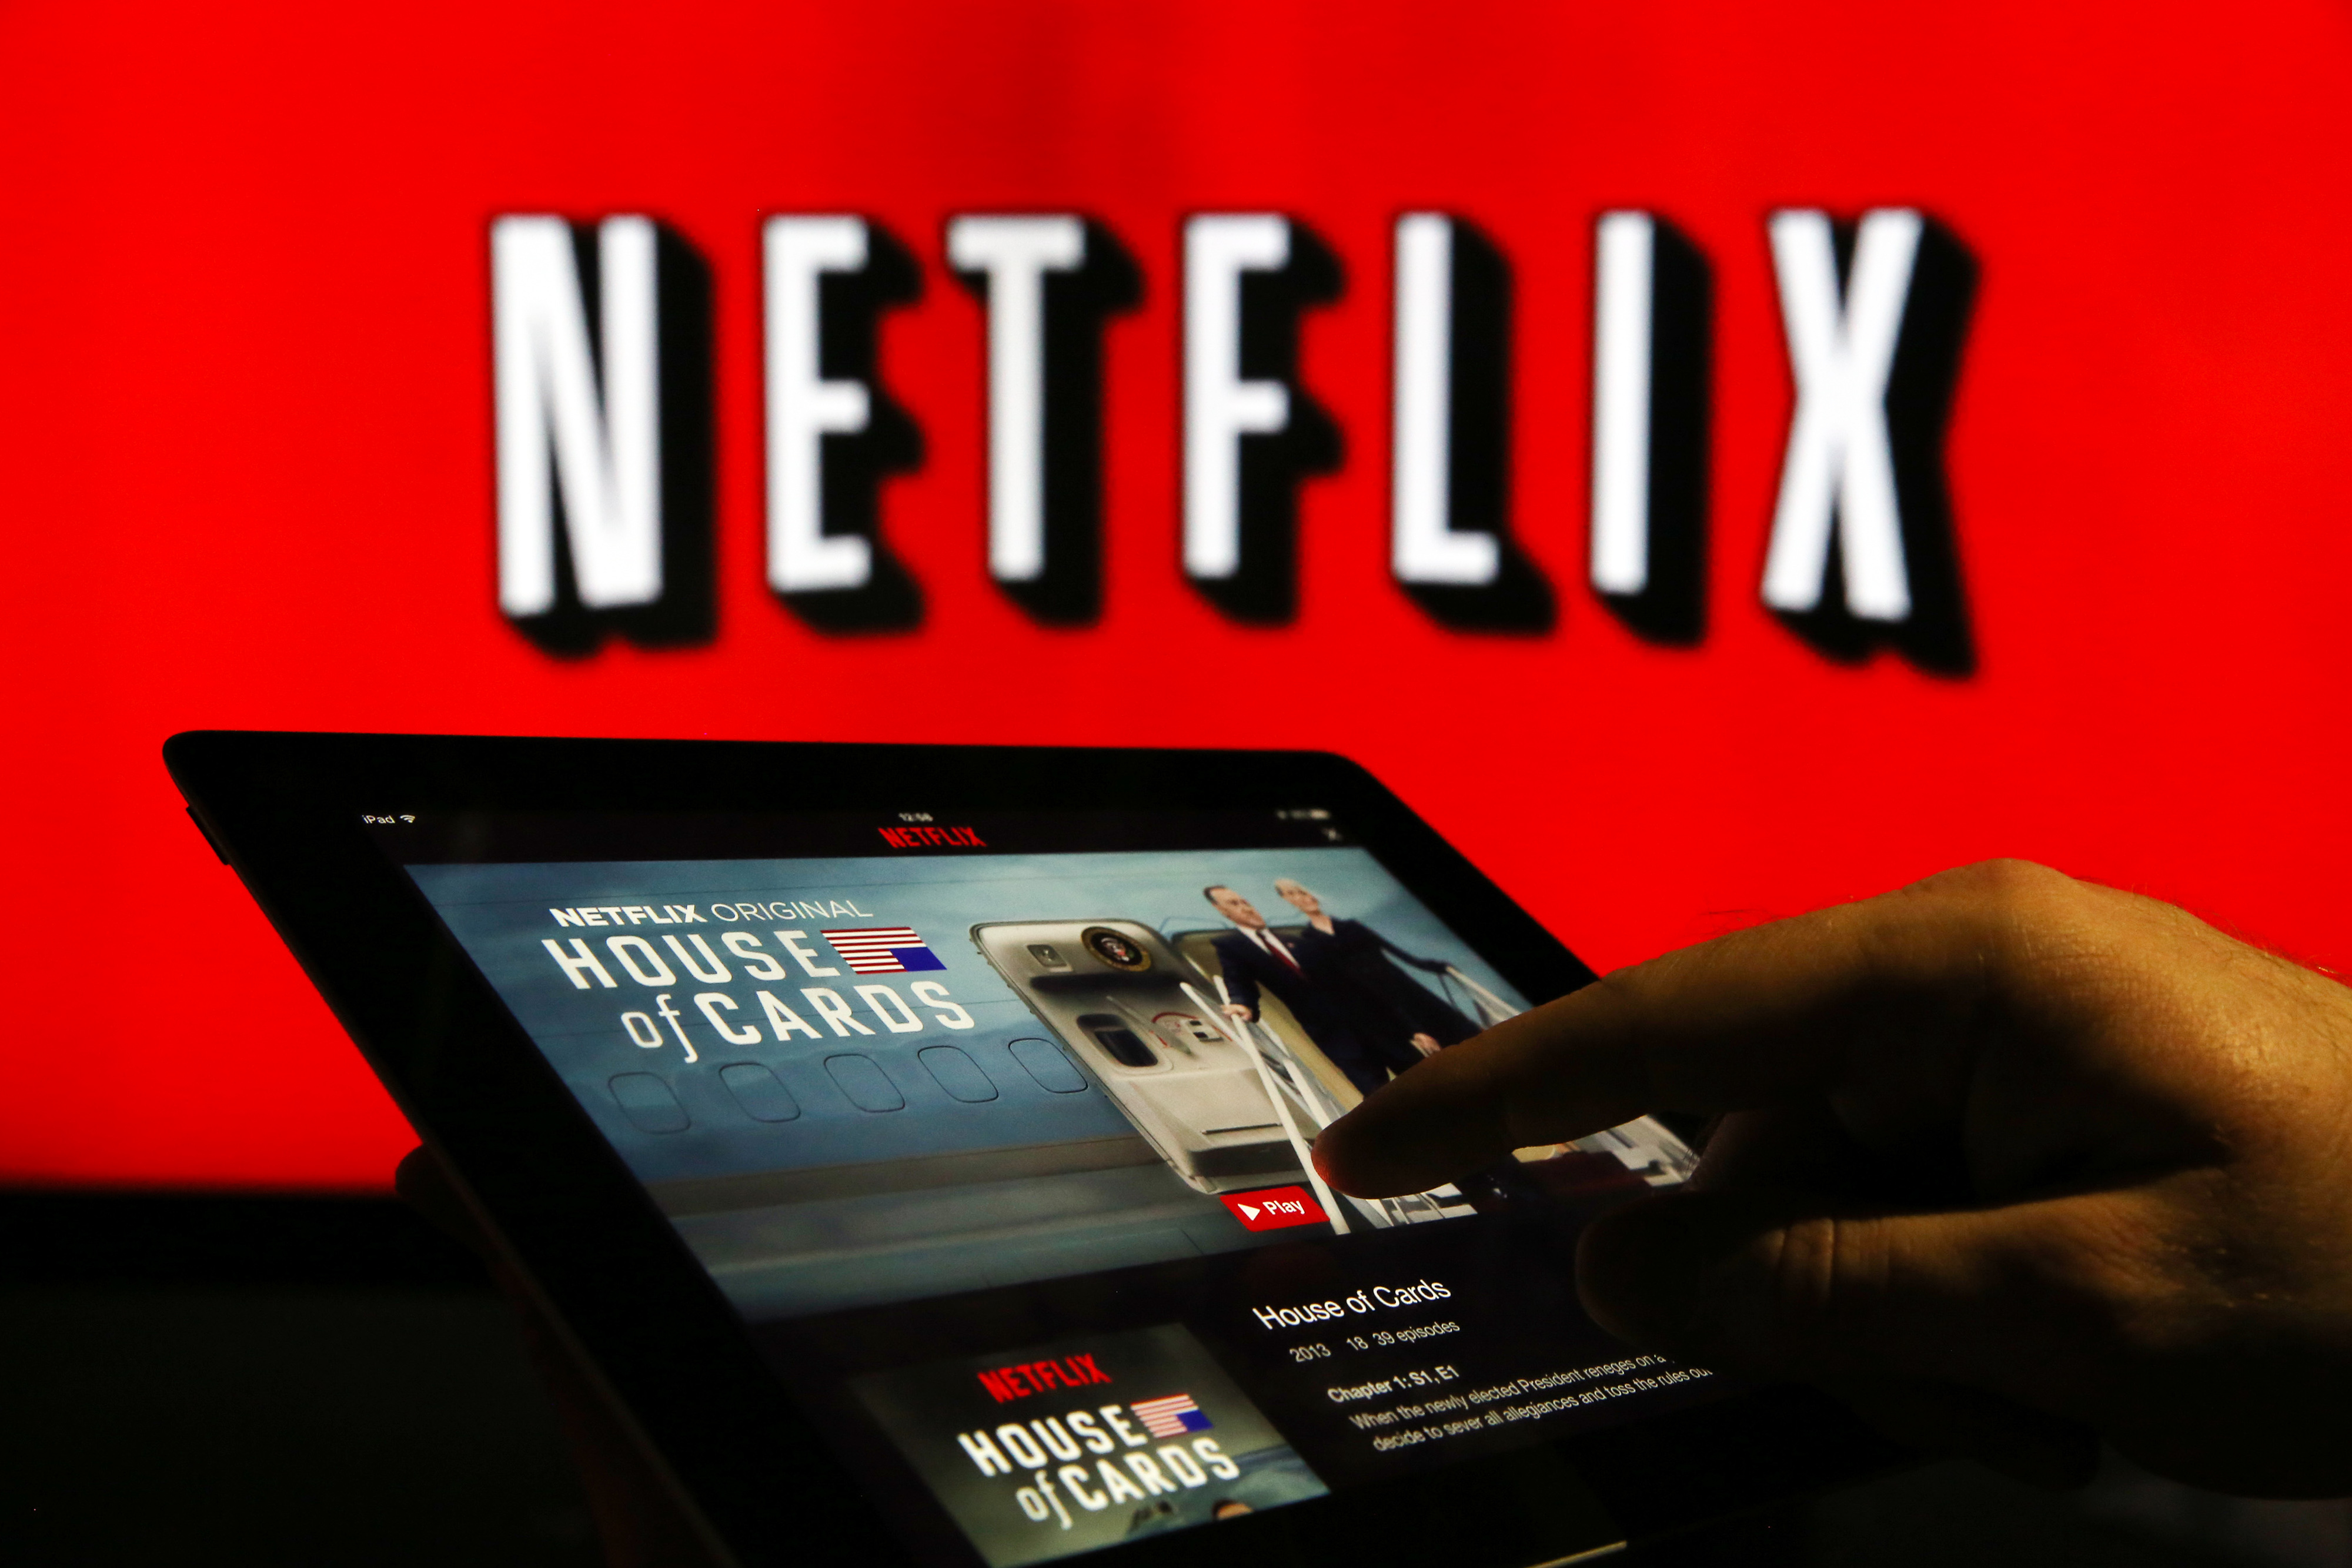 A man prepares to watch House Of Cards on the Netflix Inc. application on a tablet device in London on Jan. 5, 2016.